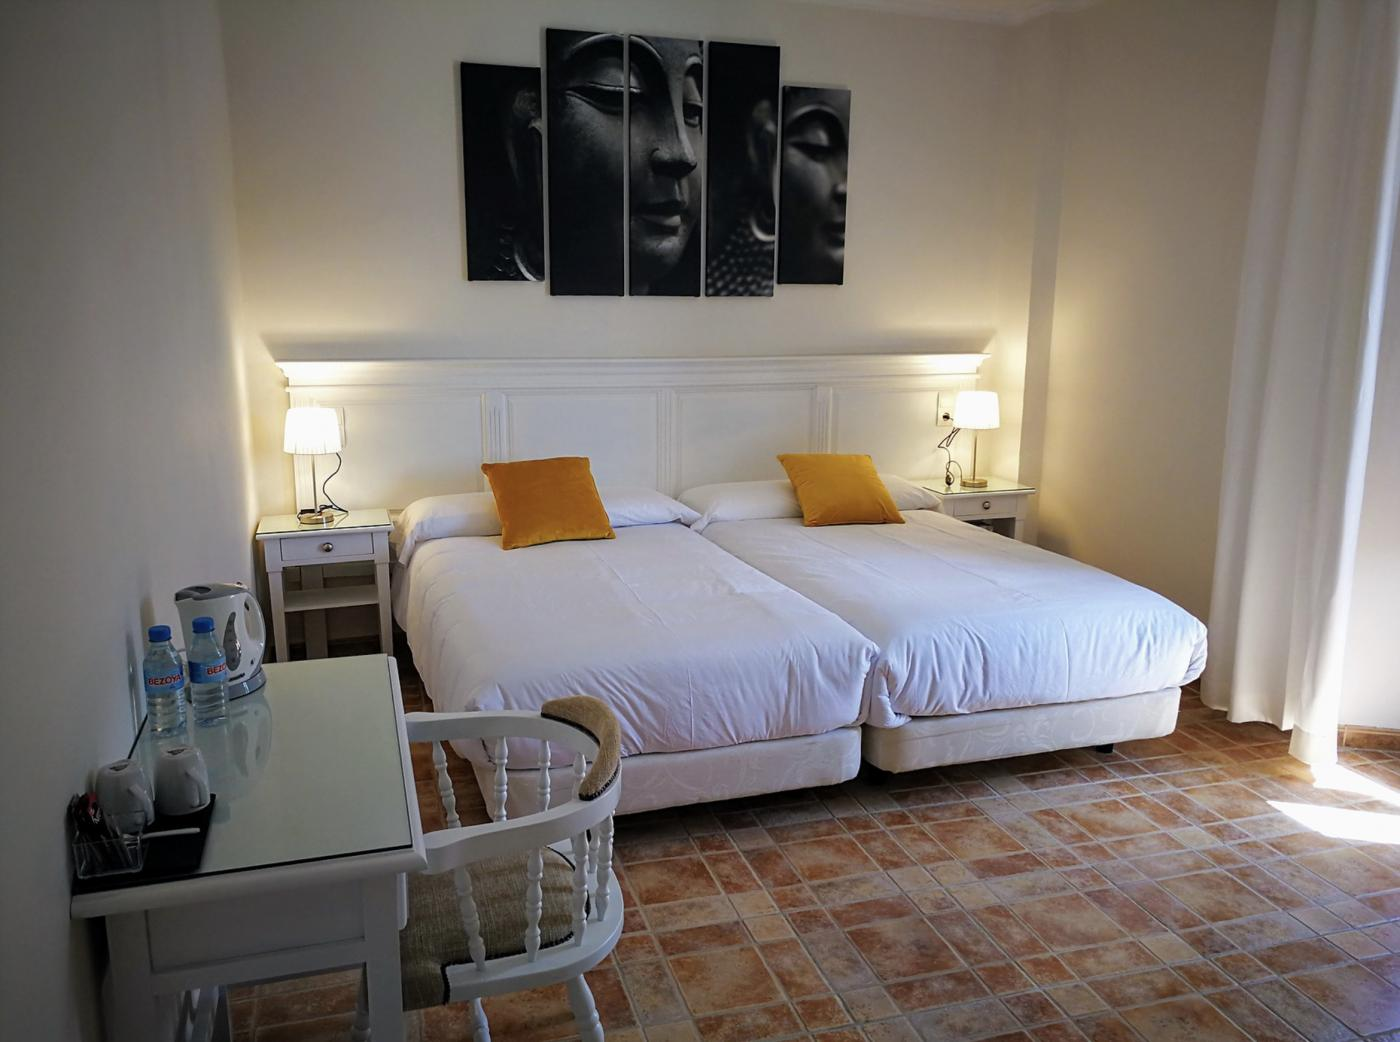 15 Bedroom Hotels and hostal for Sale in Ronda